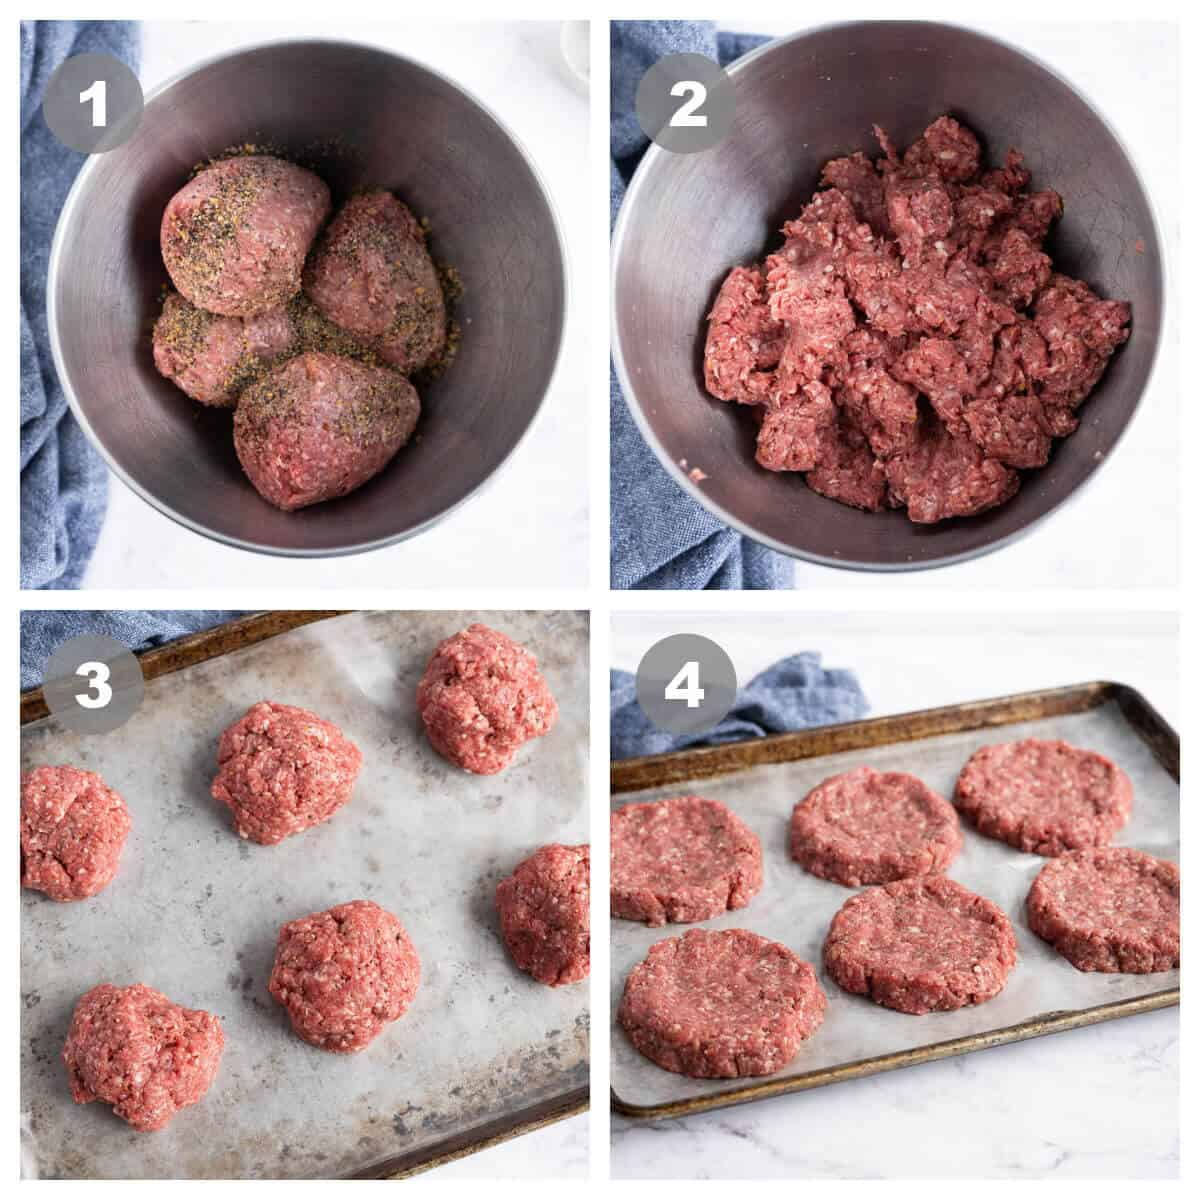 4 picture collage showing ground beef and seasonings before and after mixing, and raw meat portioned, then formed into patties